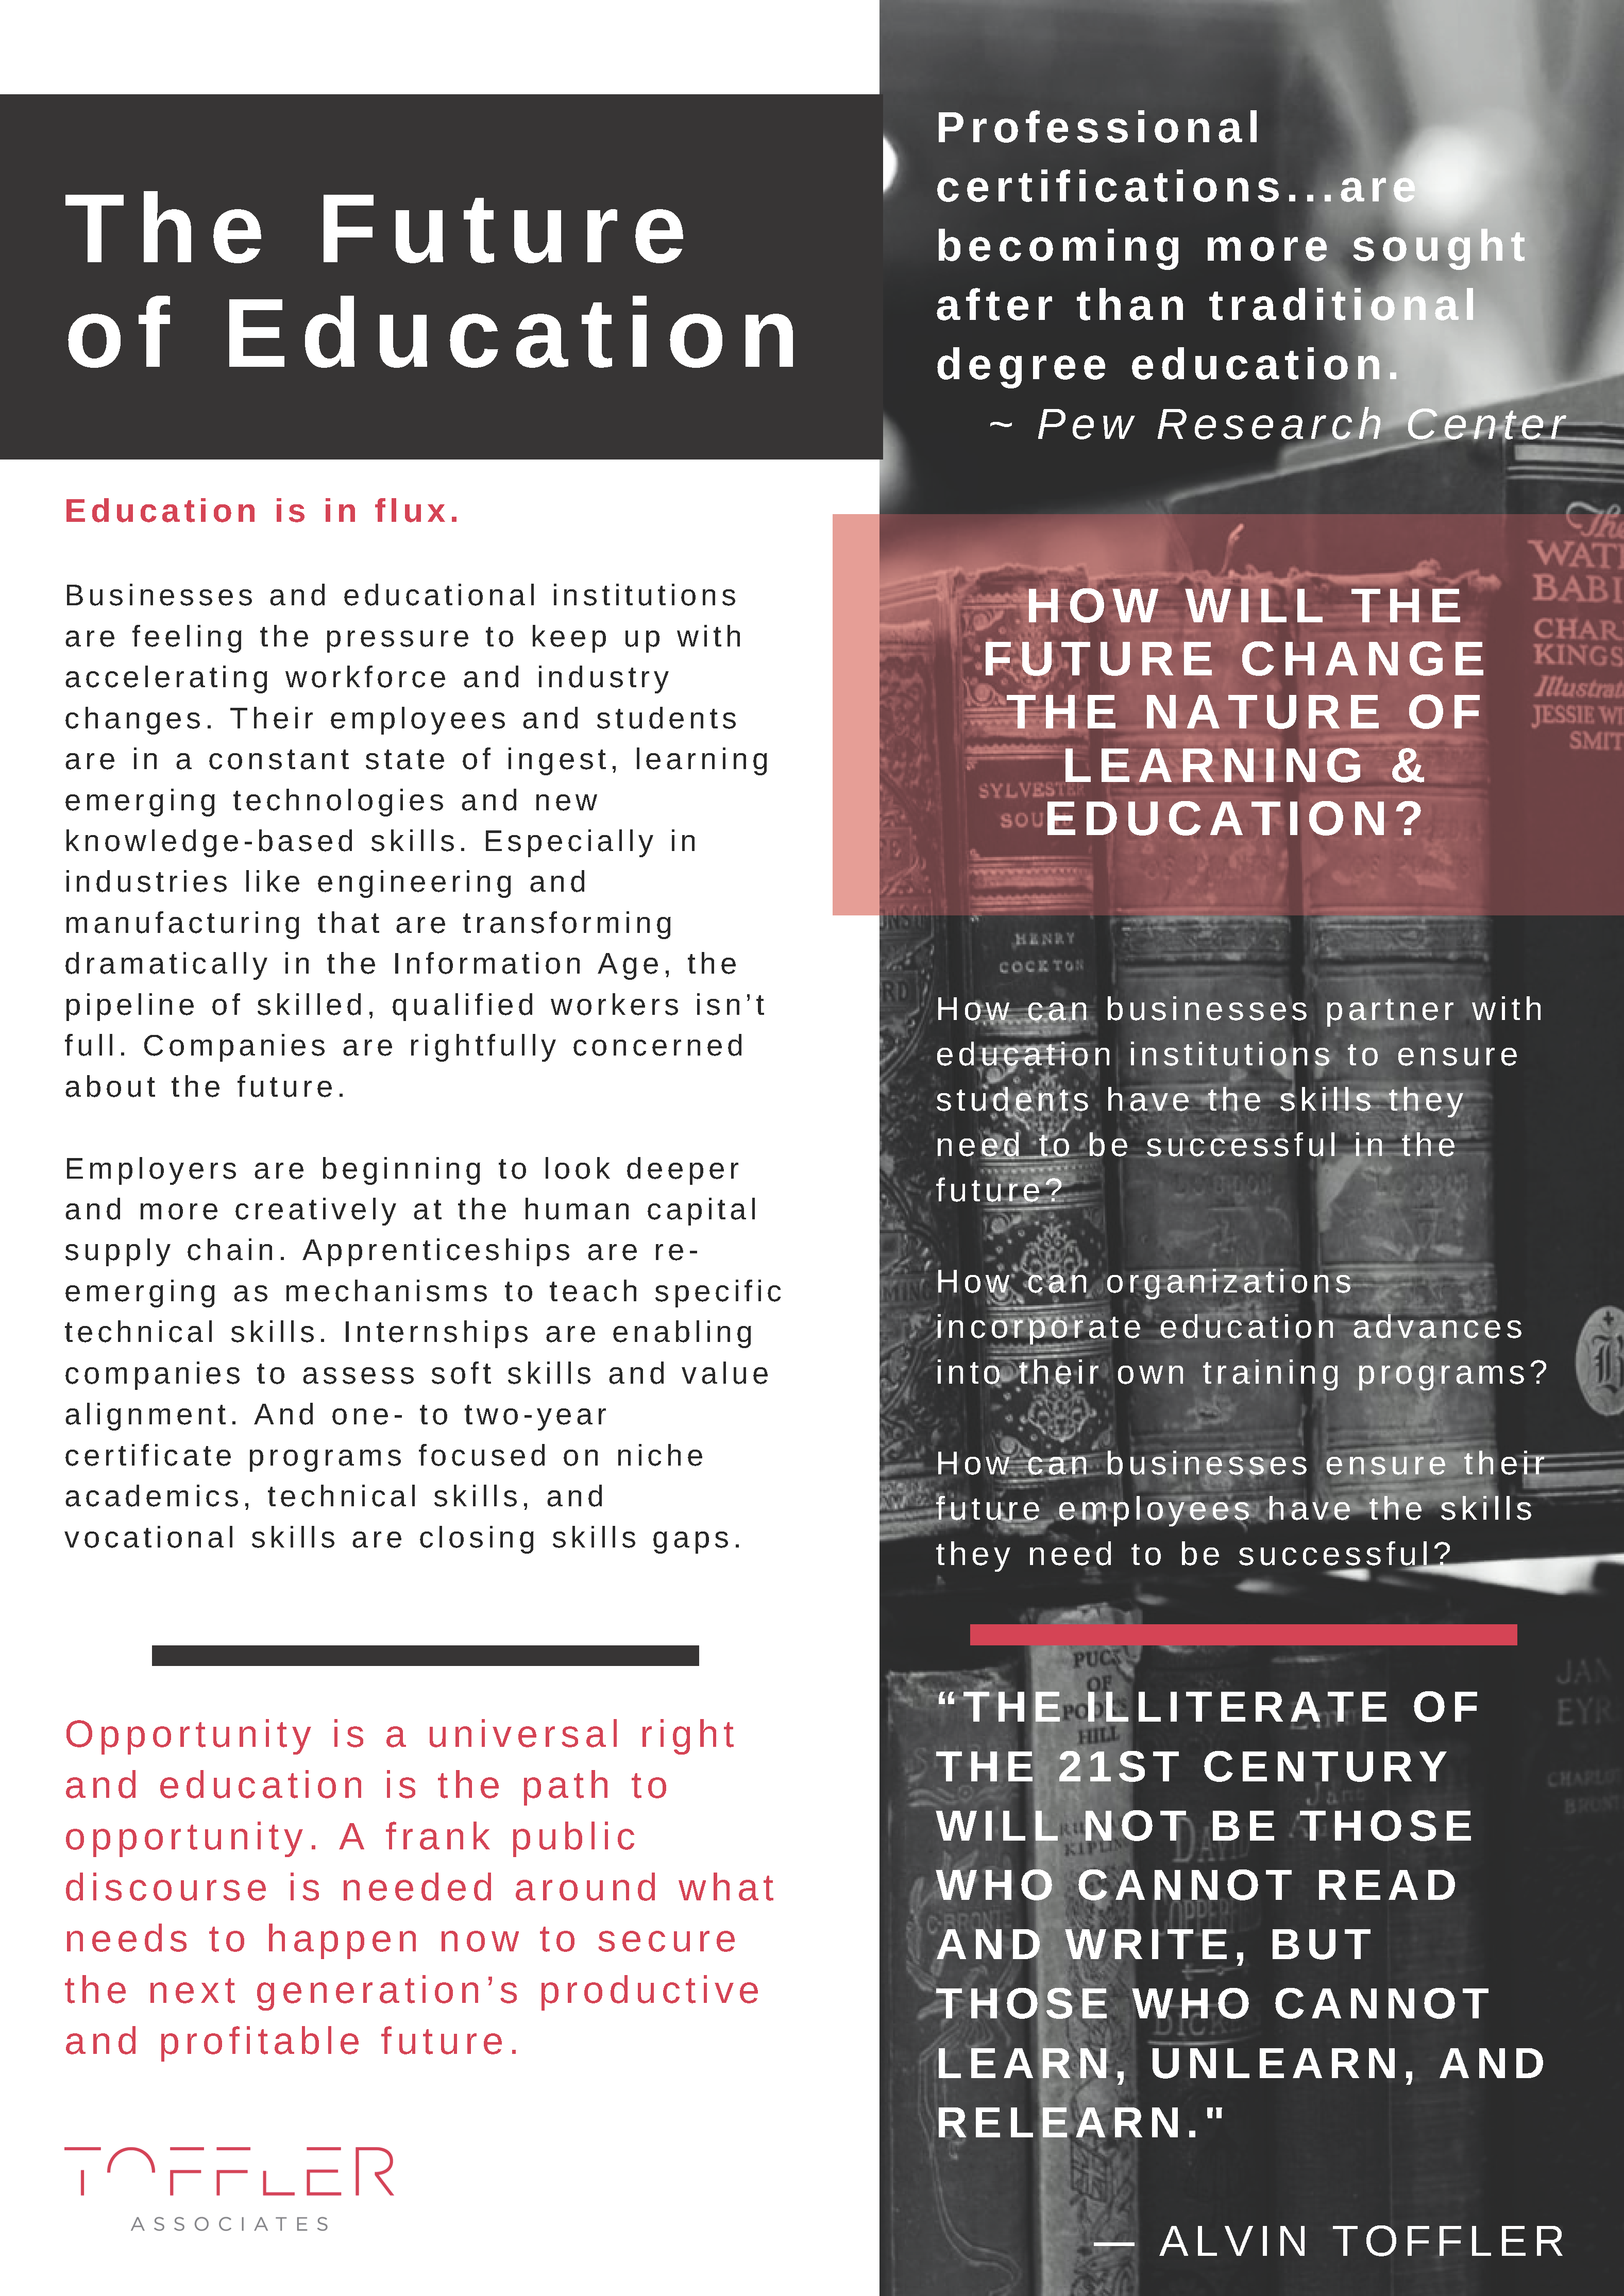 Future of Learning-Education_TA_1113v2_Page_1